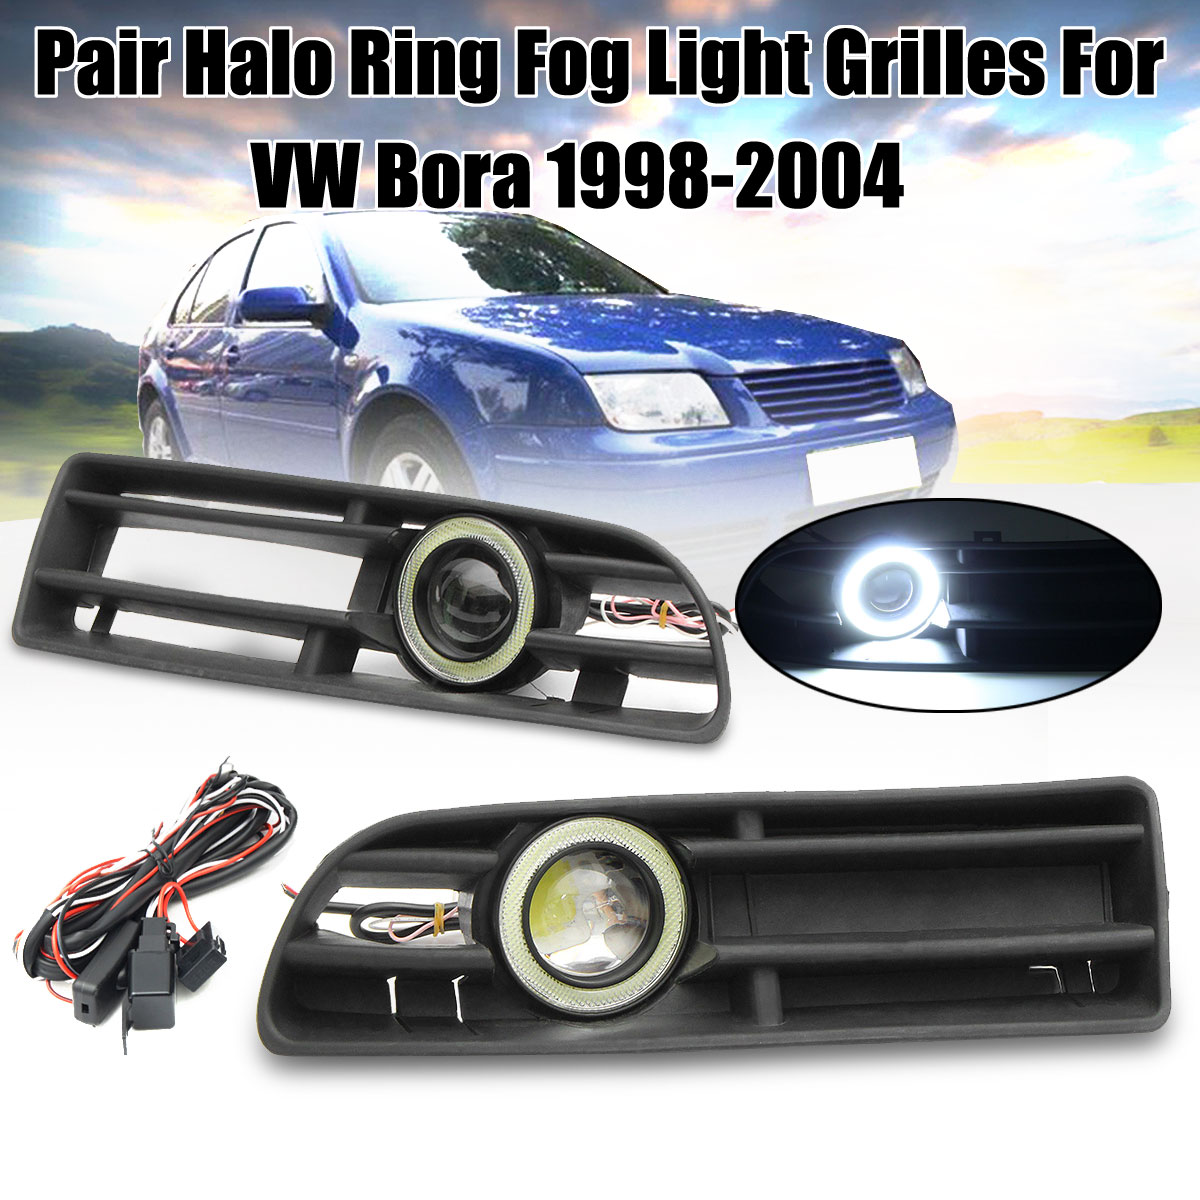 1Pair White LED Fog Light Front Bumper Grilles With Wire For VW Bora 1998 1999 2000 2001 2002 2003 2004 Angel Eyes Lamp